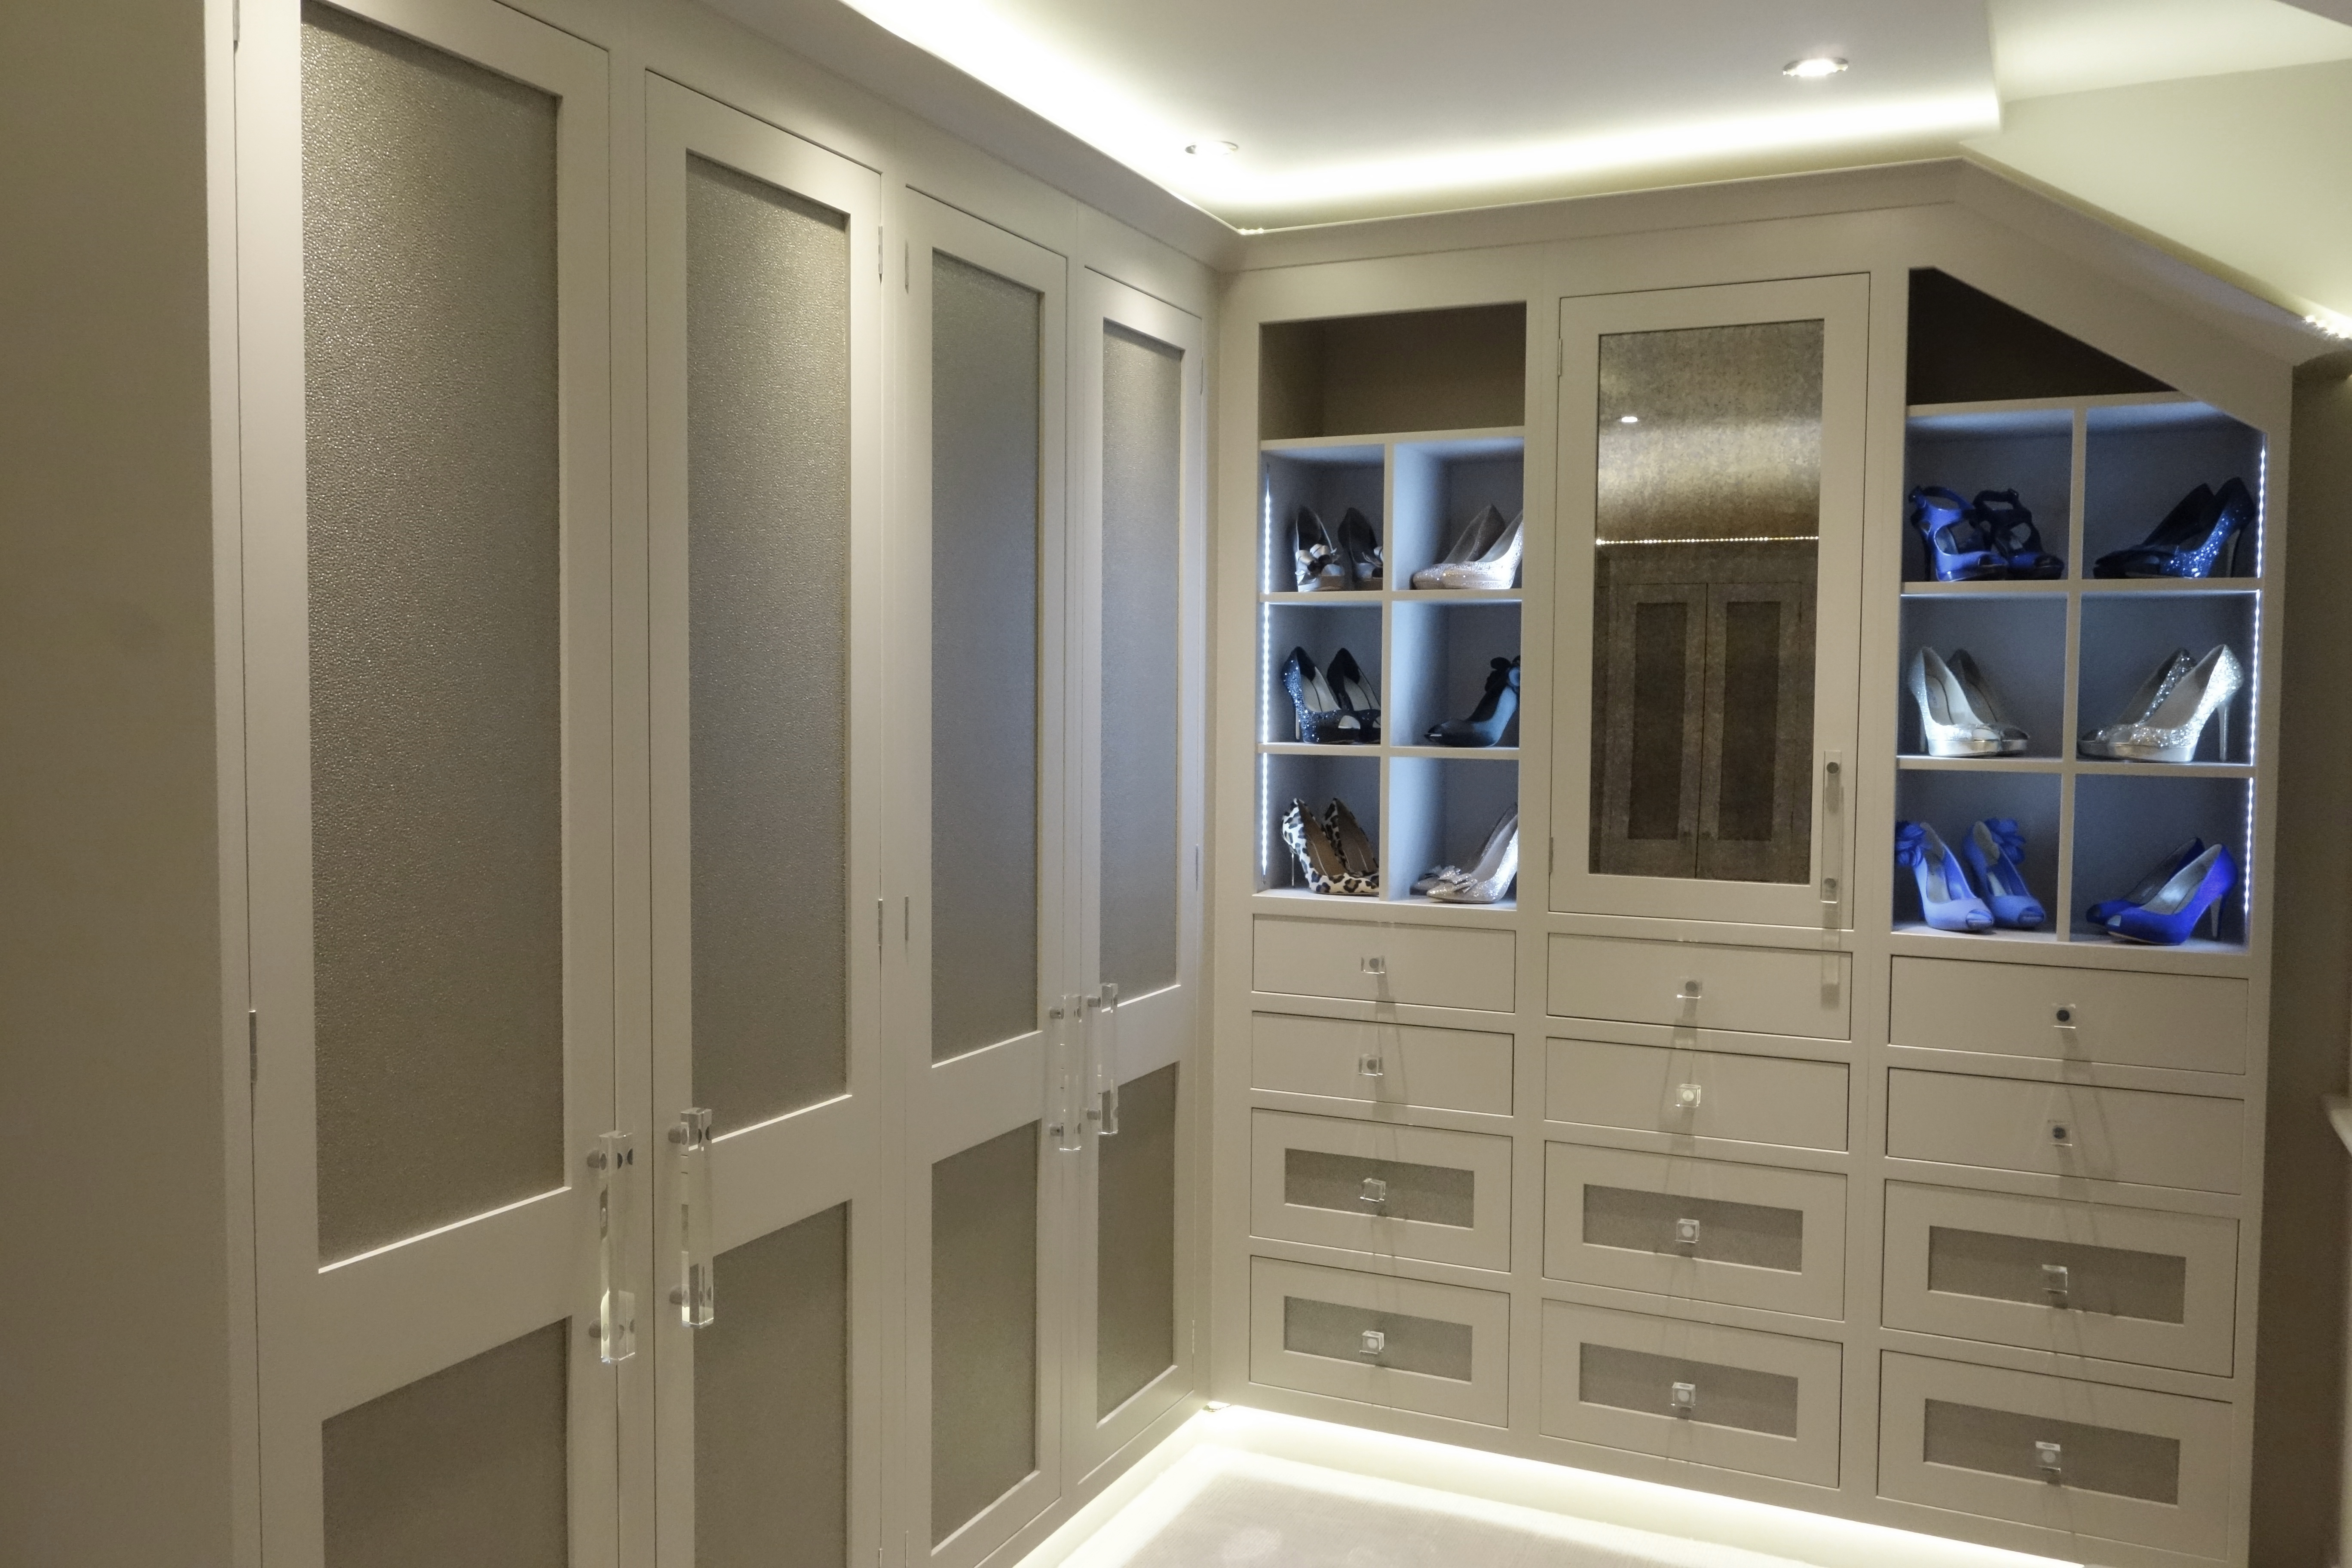 york interior design, Interior Design York, york interior designers, york interior designer, interior designer york, interior design york, interior designers york, york architects, Interior Design - York, walk in wardrobes, walk in wardrobe, luxury walk i